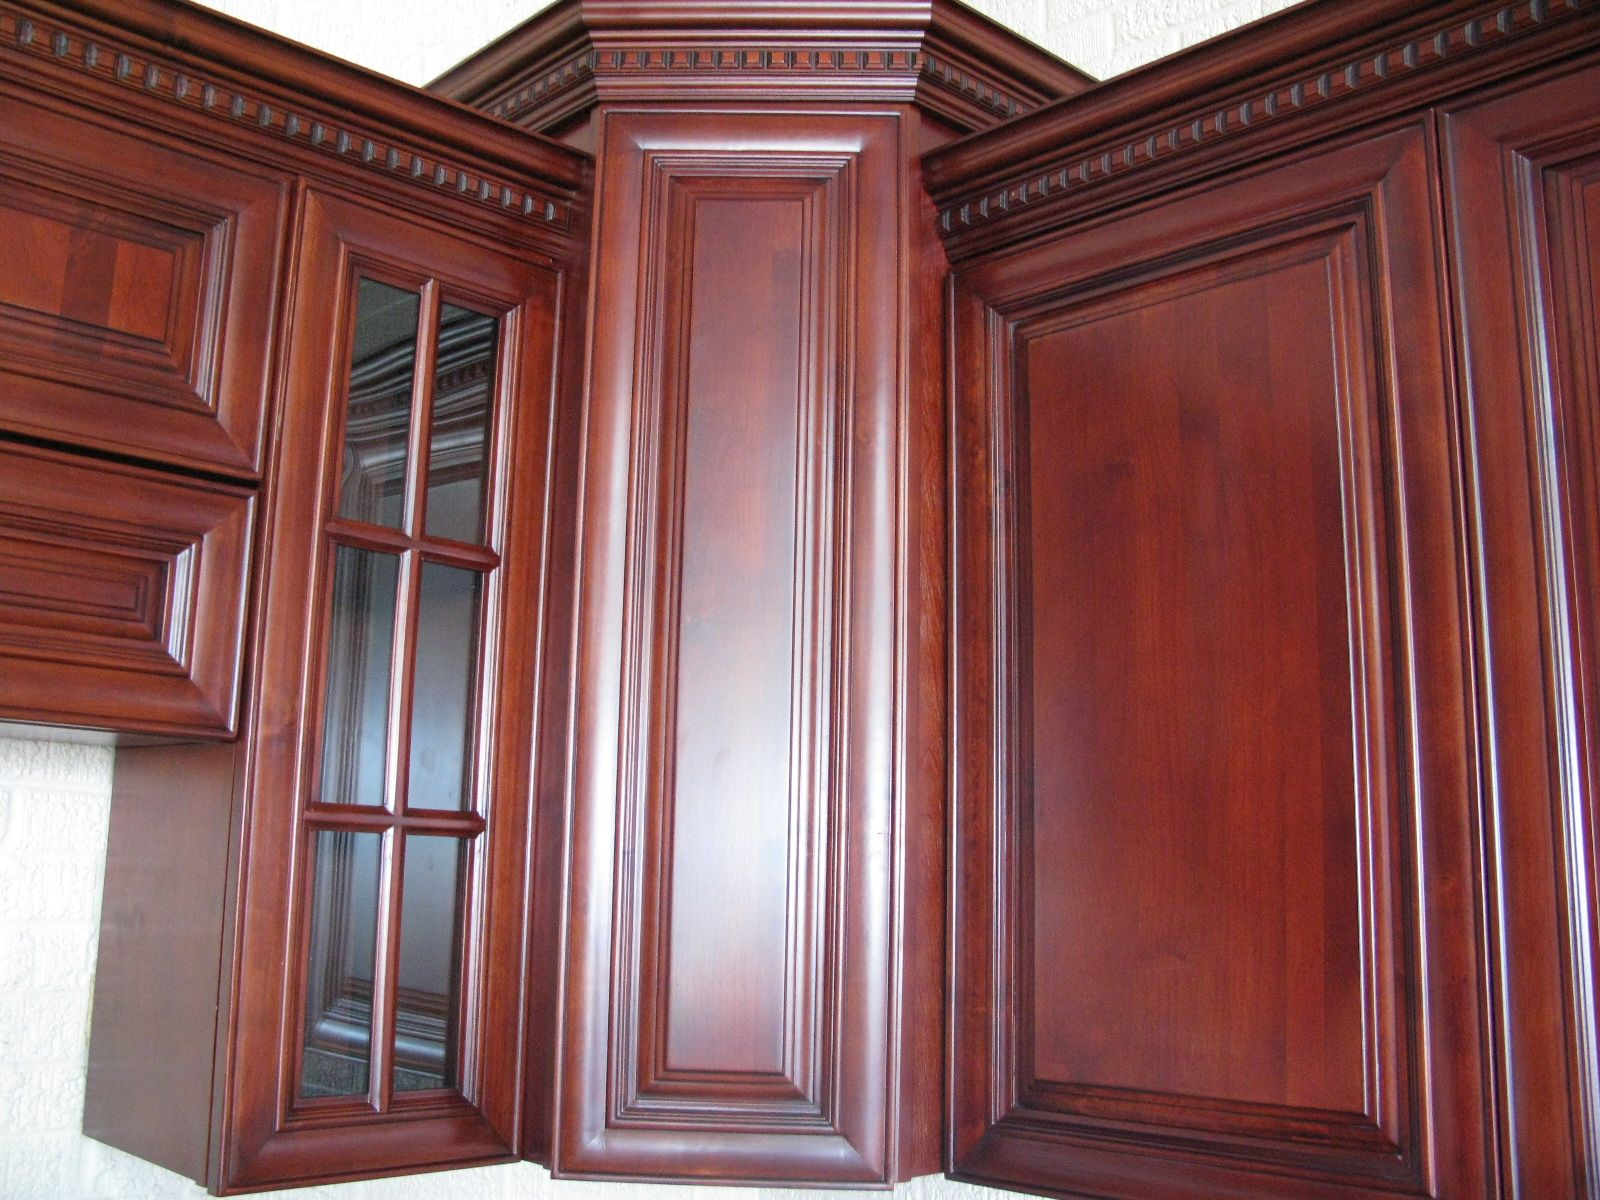 Cherry maple cabinets crown molding with dentil detail for Maple cabinets